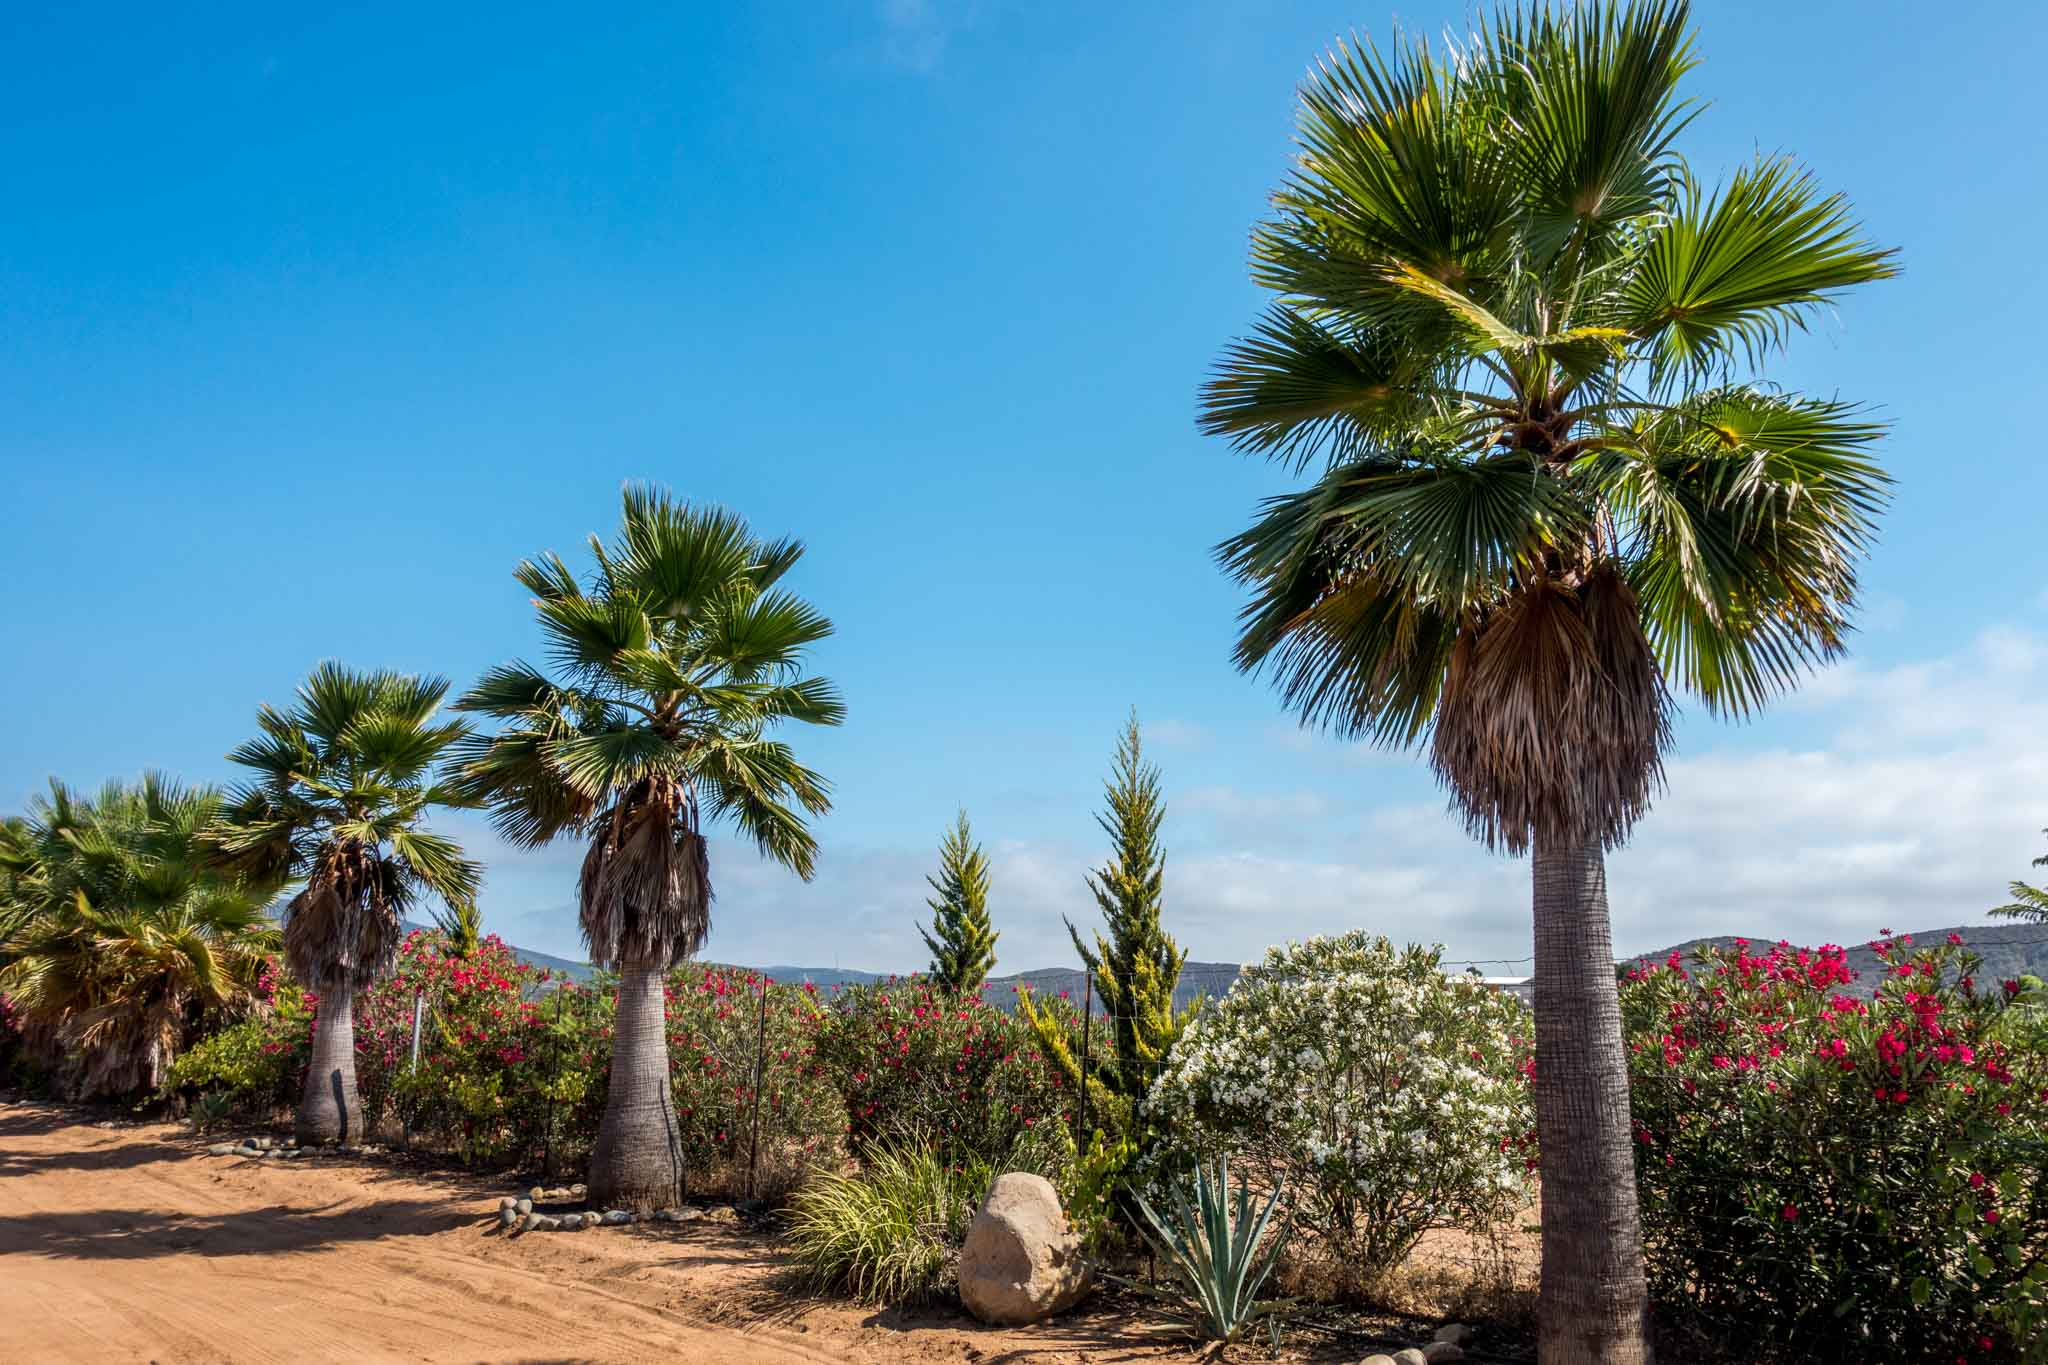 Palm trees at Vinicola Relieve in Baja California